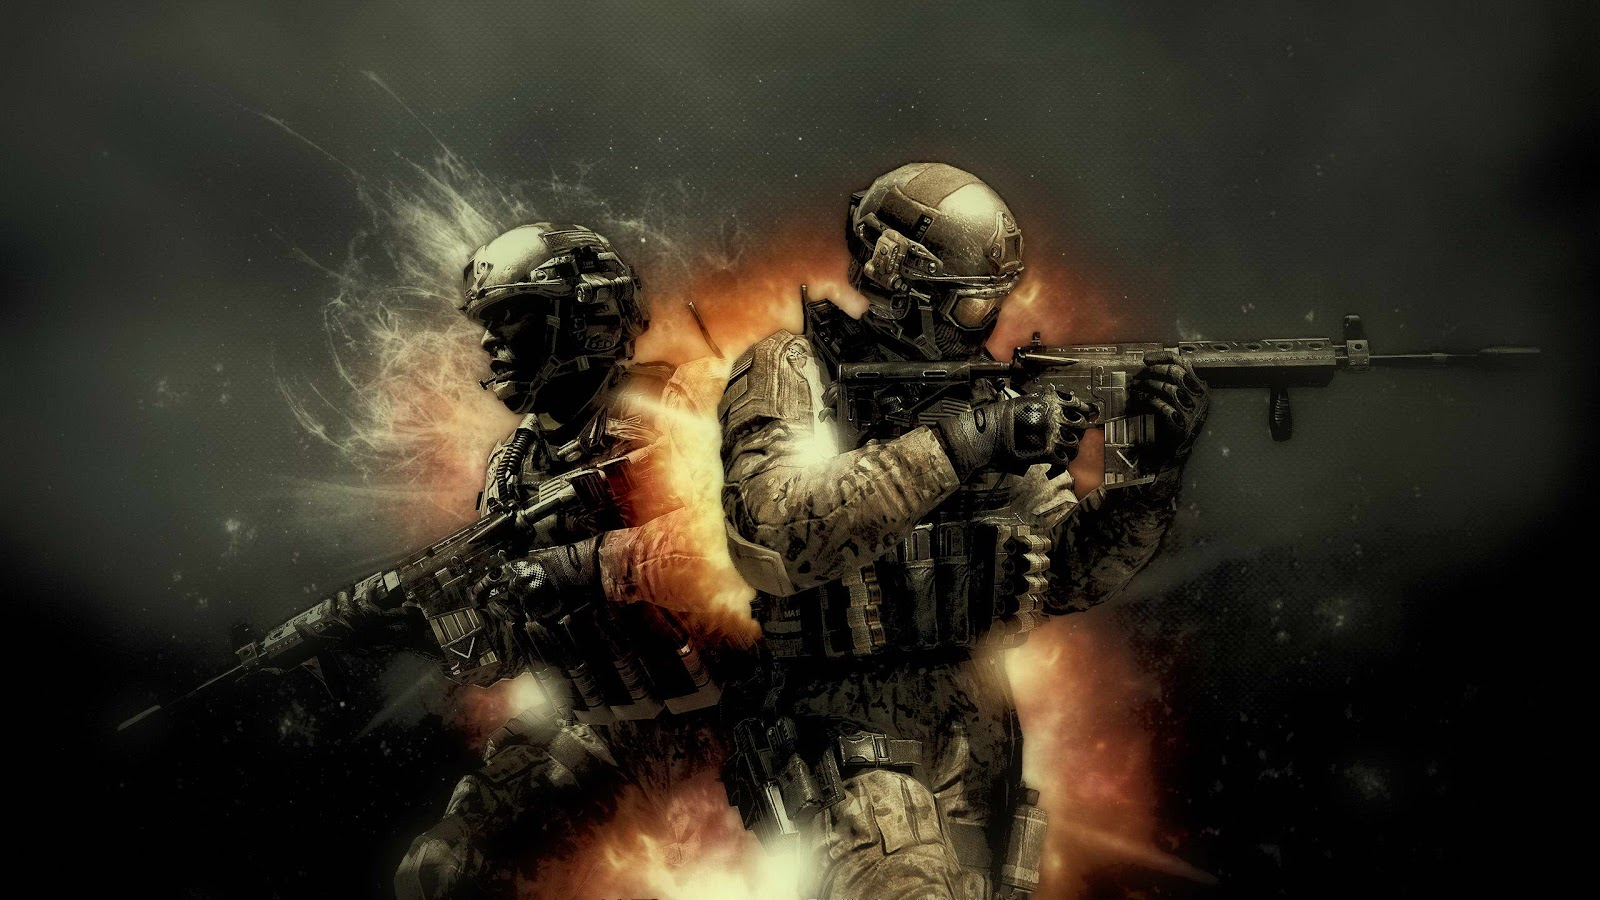 Free Download Call Of Duty Black Ops 2 Wallpaper 37 1600x900 For